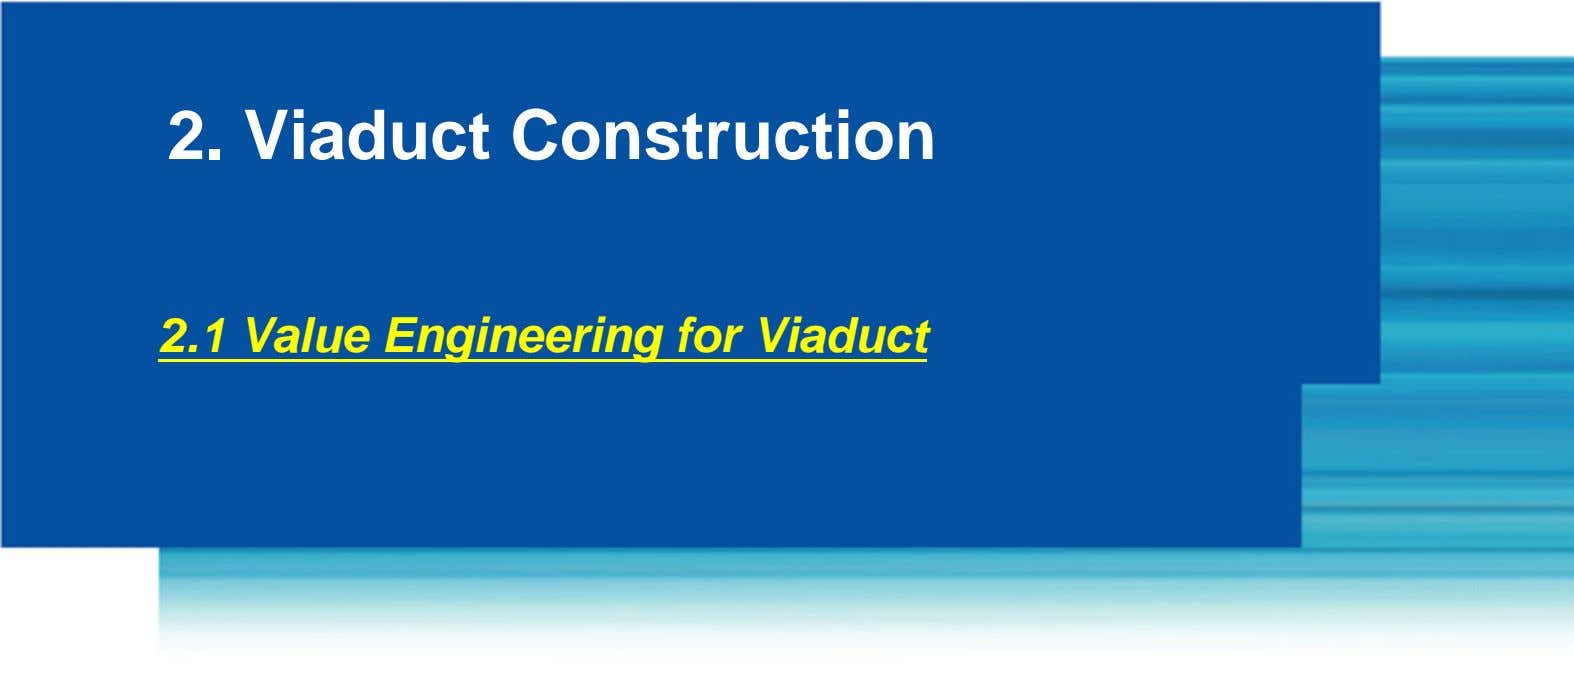 2. Viaduct Construction 2.1 Value Engineering for Viaduct